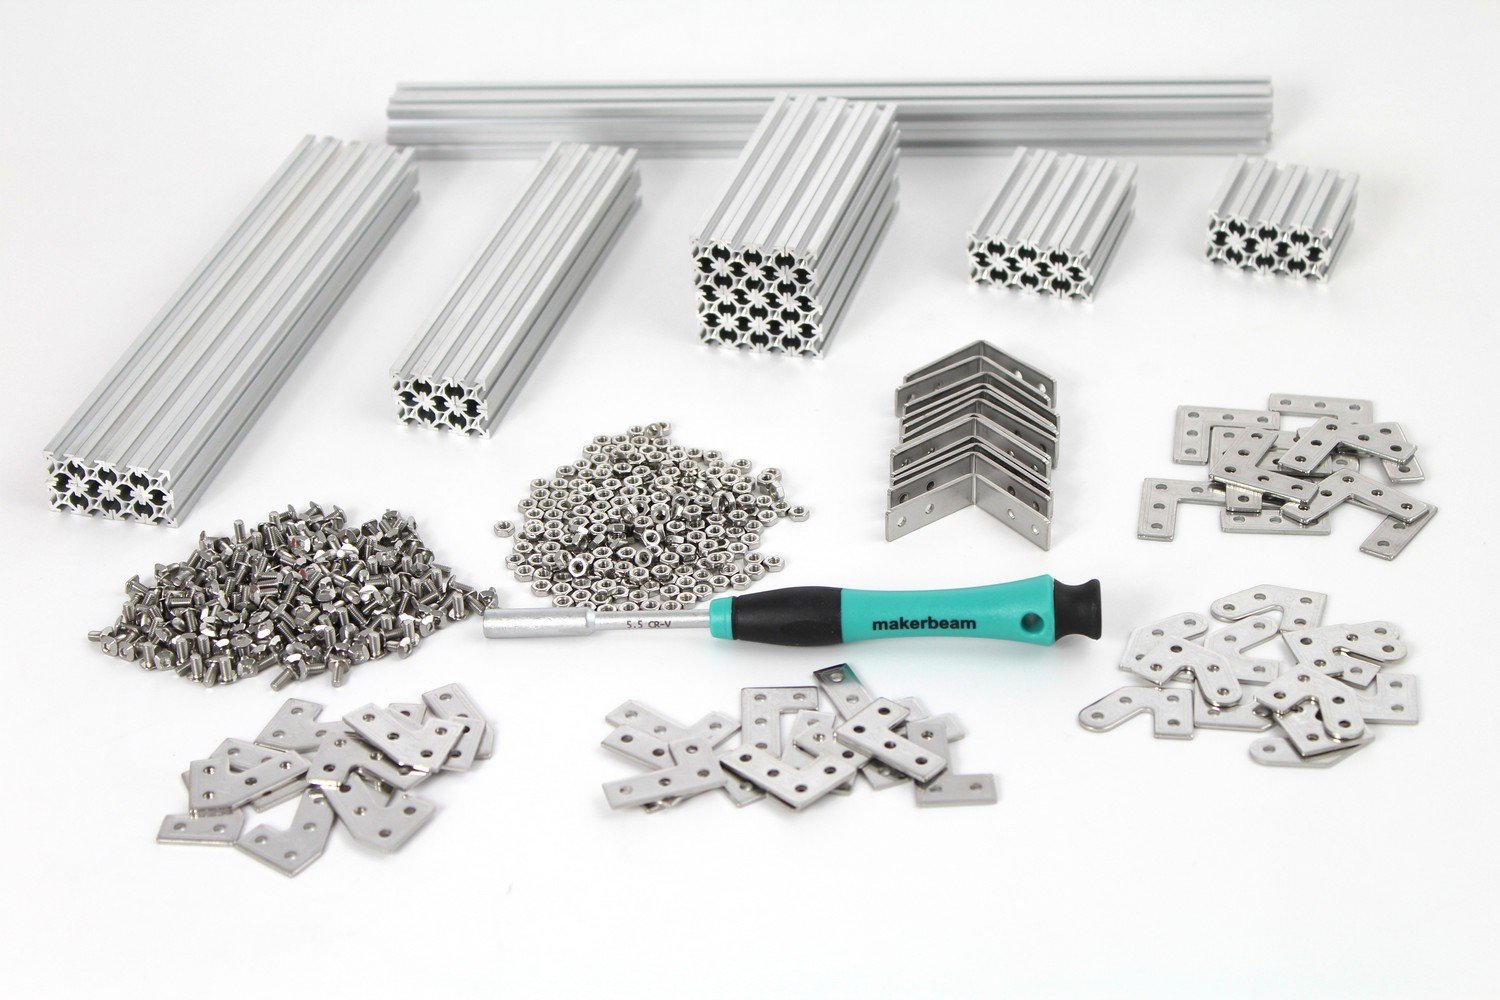 MakerBeam Regular Starter Kit Clear anodized including beams, brackets, nuts and bolts